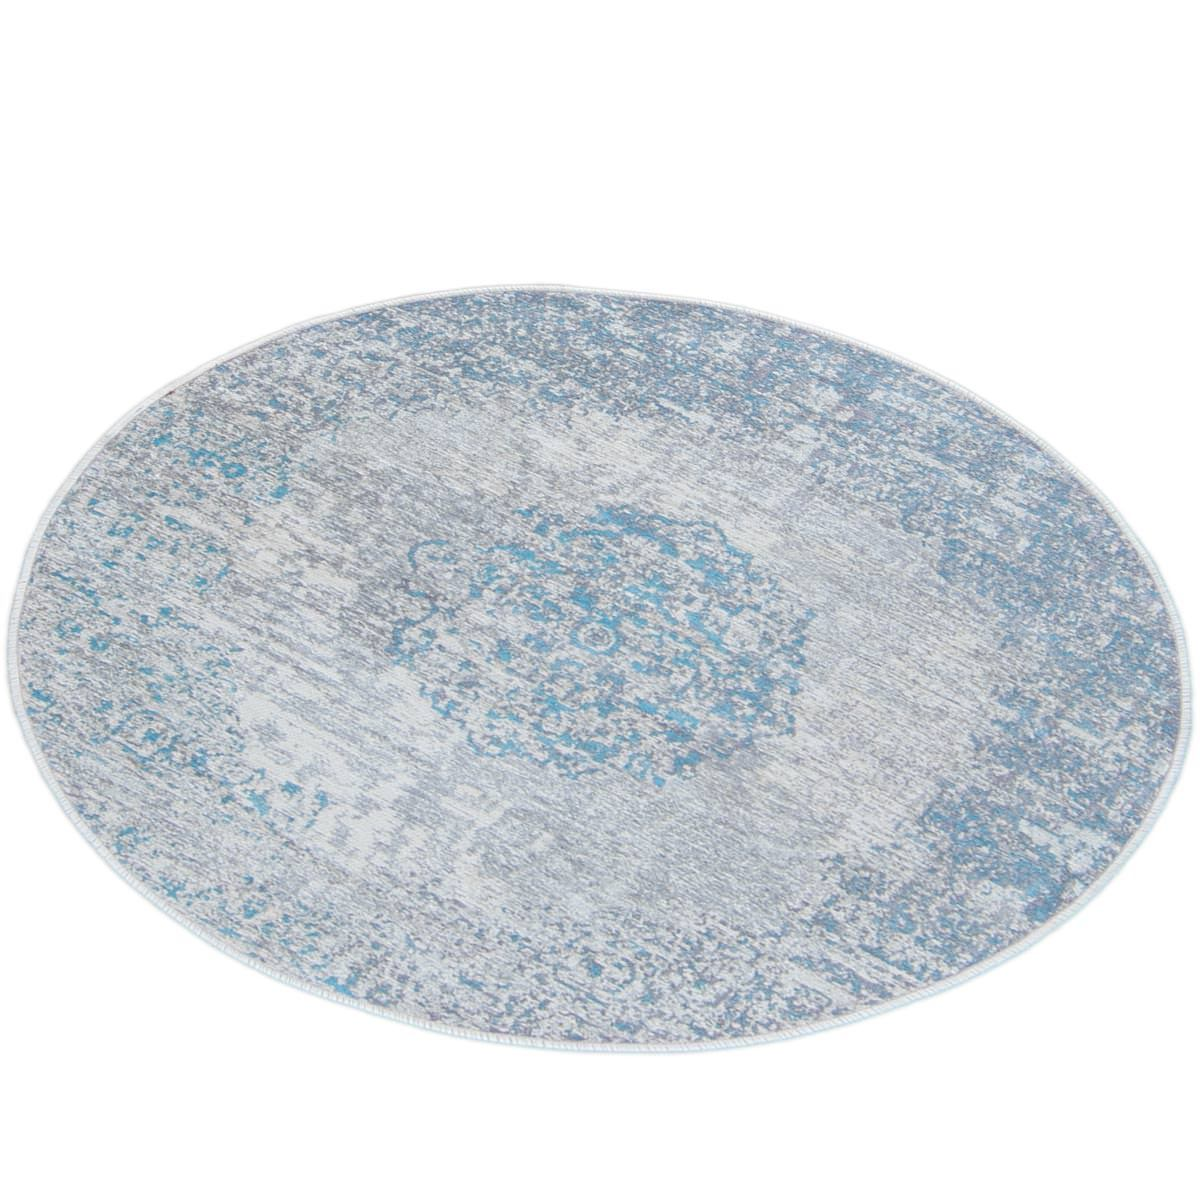 Marseille Rug 36 Light Blue Round 3